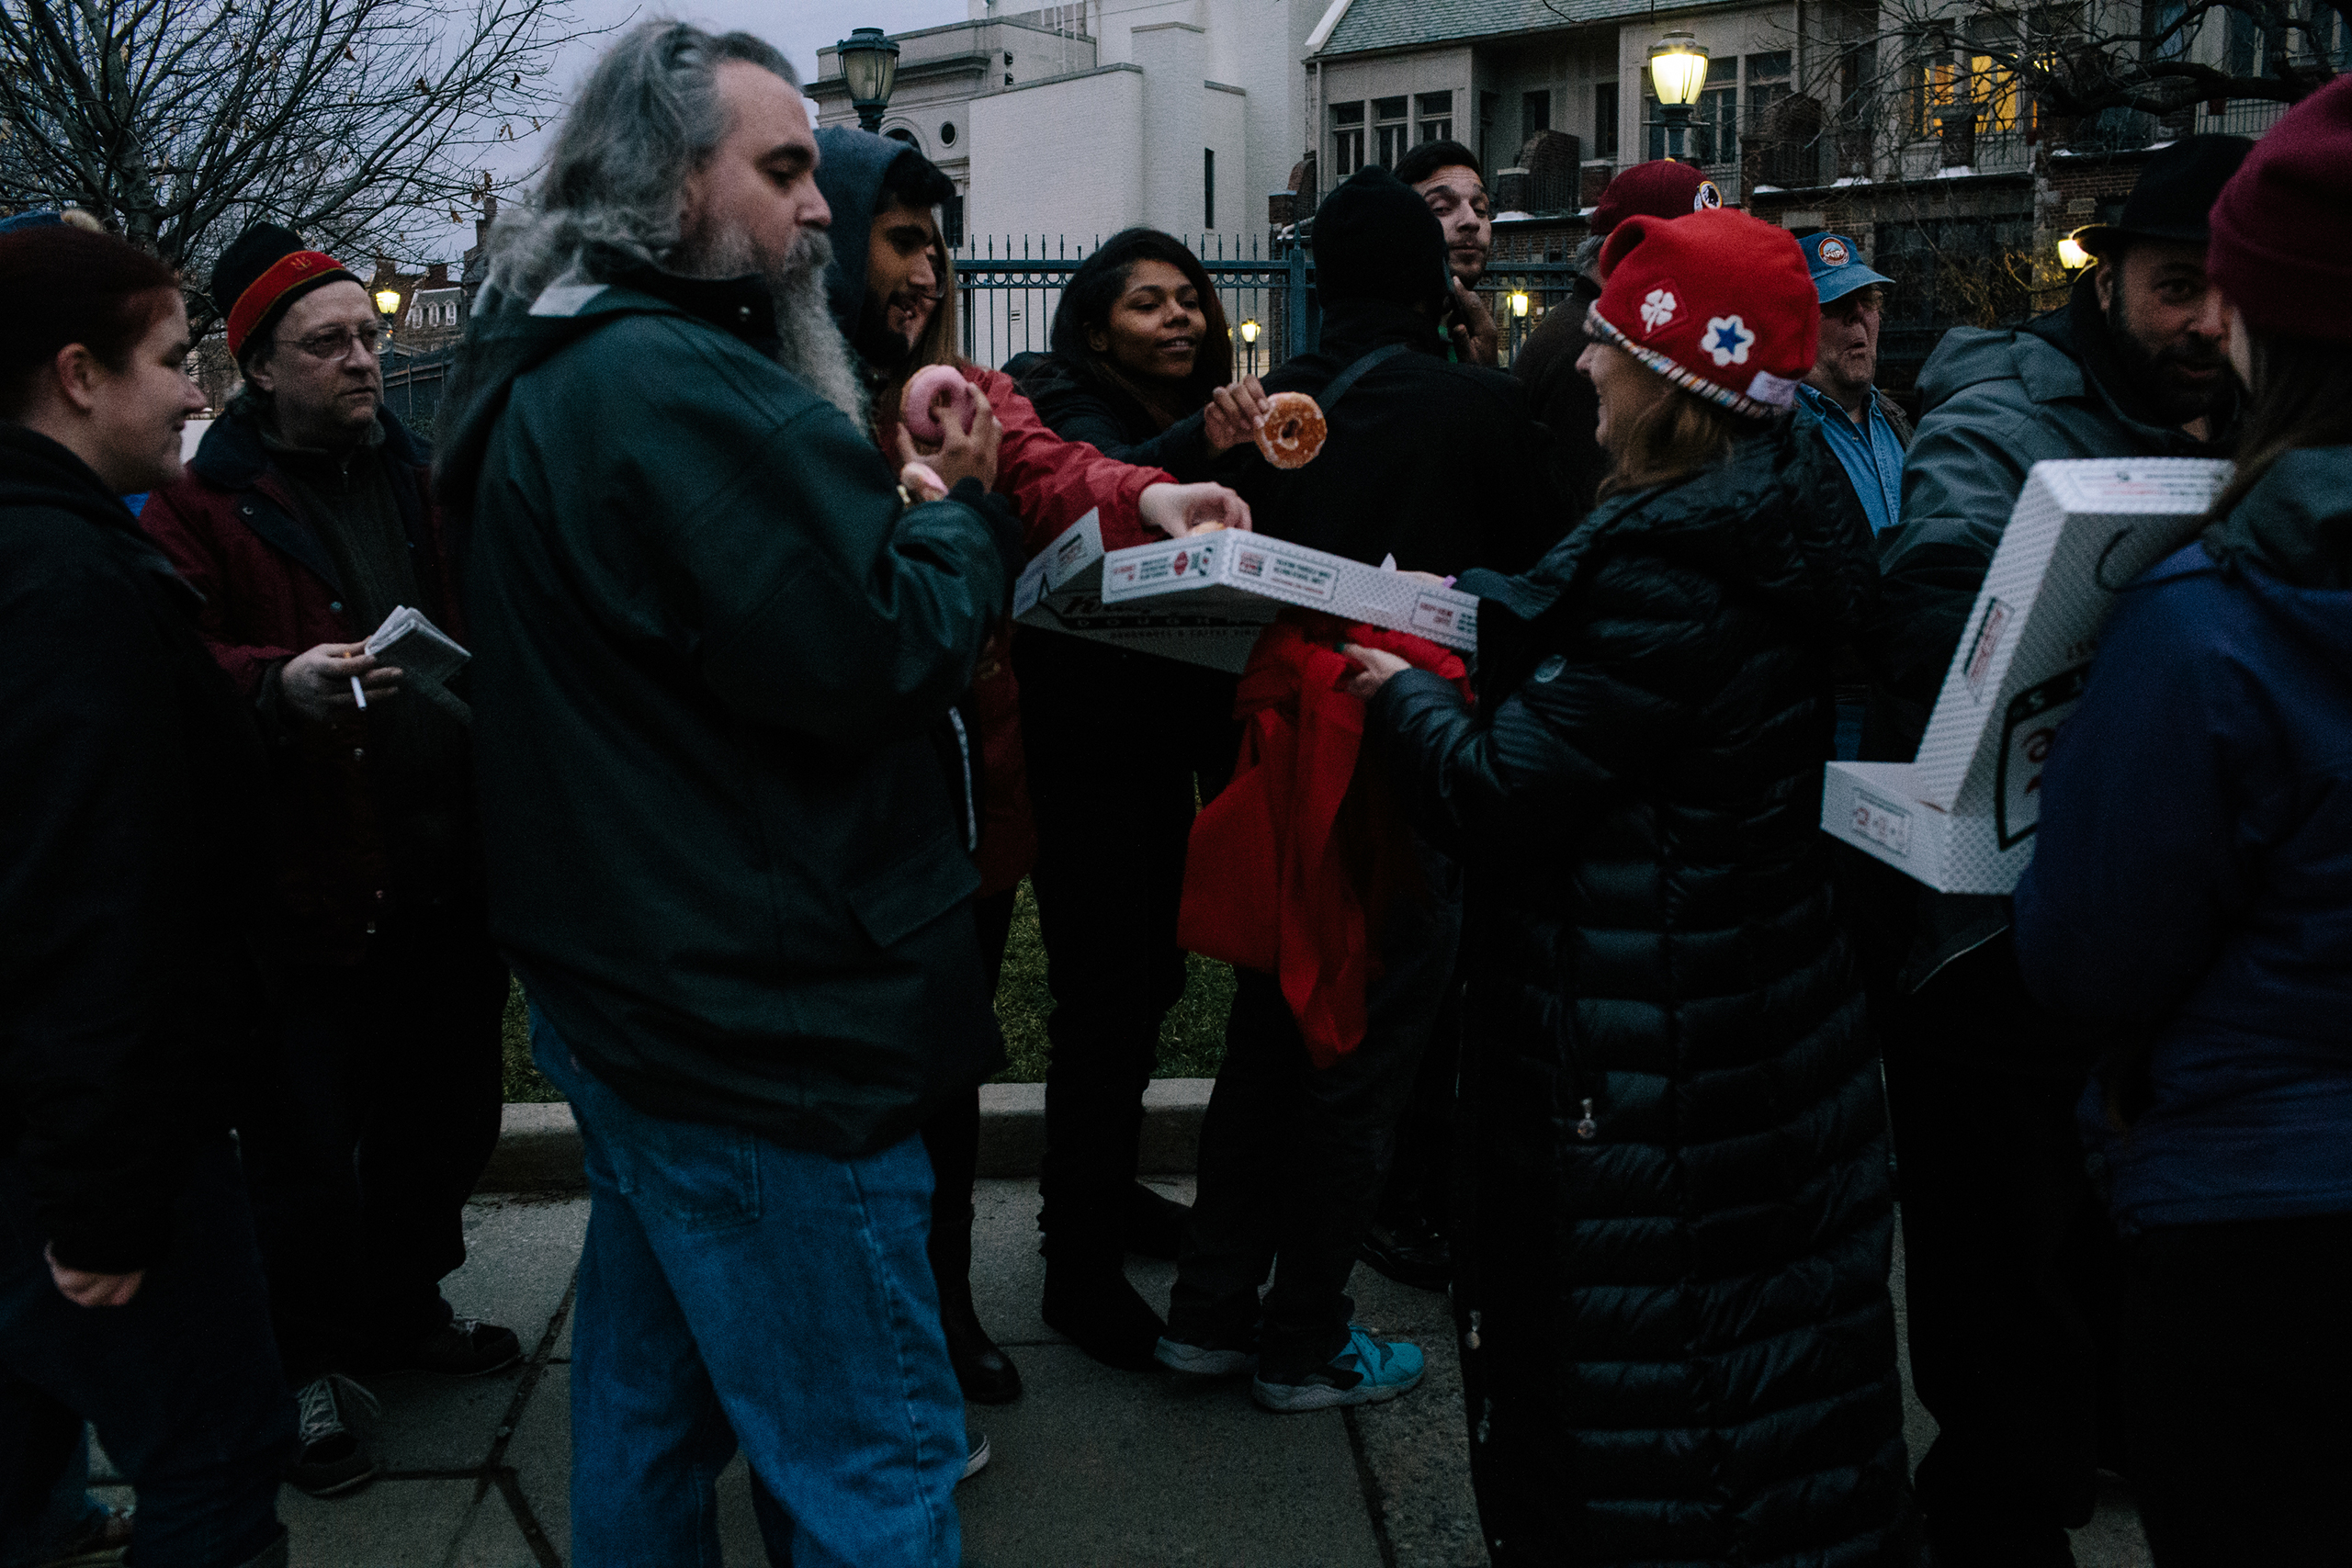 DCMJ, a D.C.-based marijuana advocacy group, hands out 420 donuts to people standing in line for a free joint Friday during the #Trump420 event on Jan. 20, 2017 in Washington.